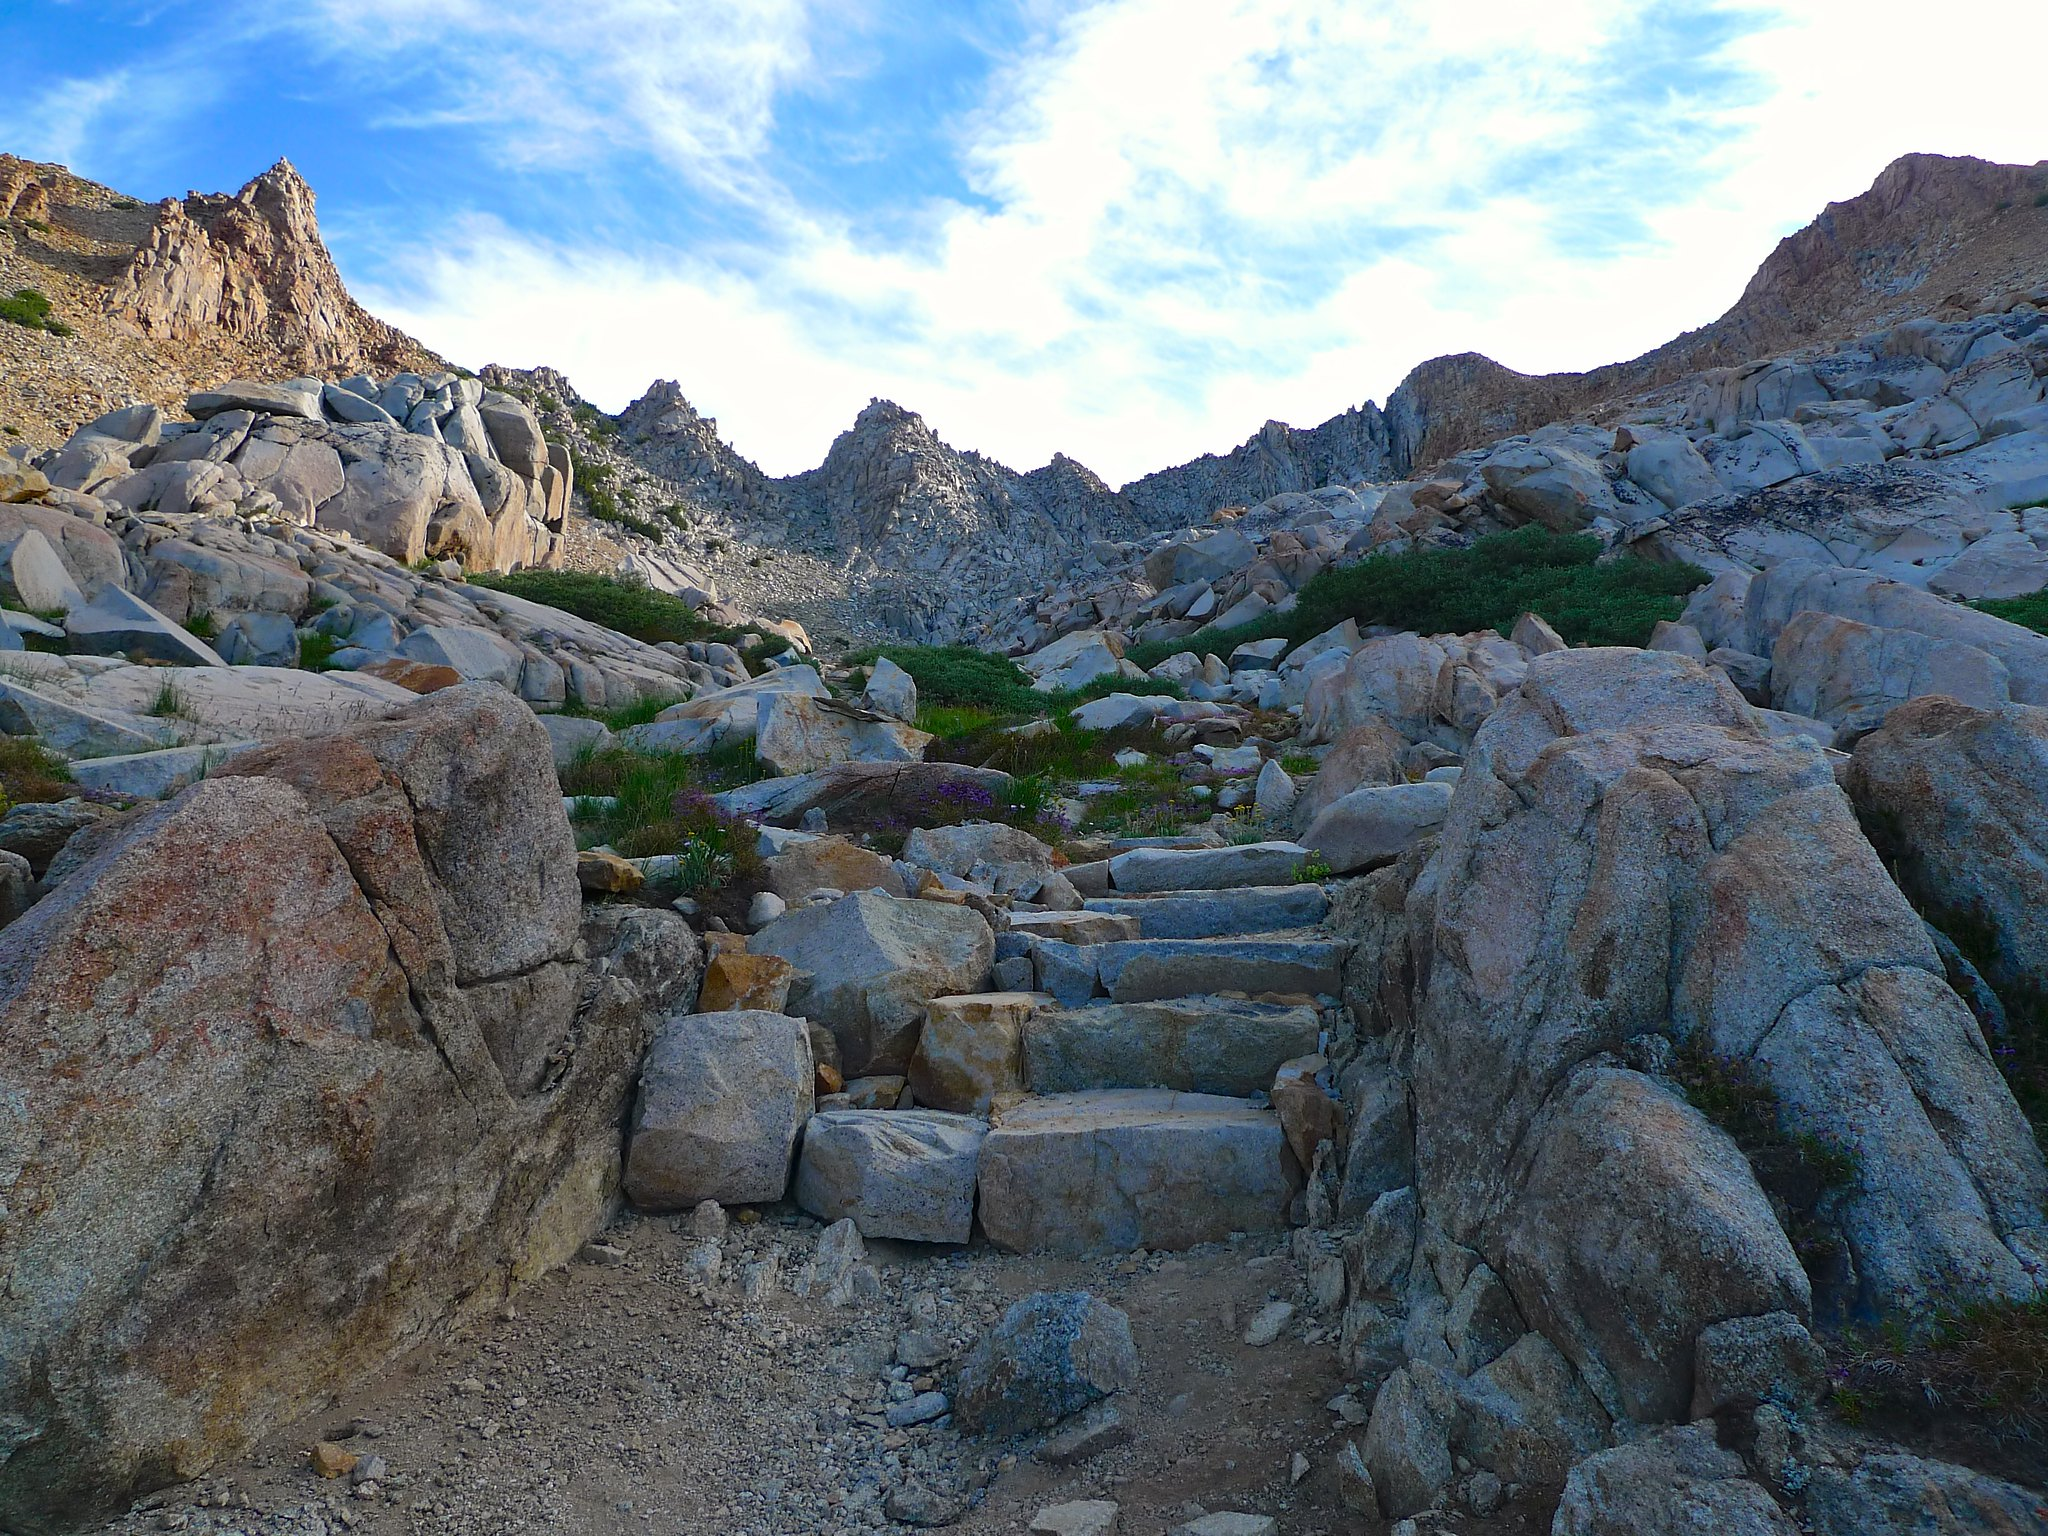 Climbing higher and higher on the Red Peak Pass trail. The pass is in the dip between the two close gray peaks towards the left.